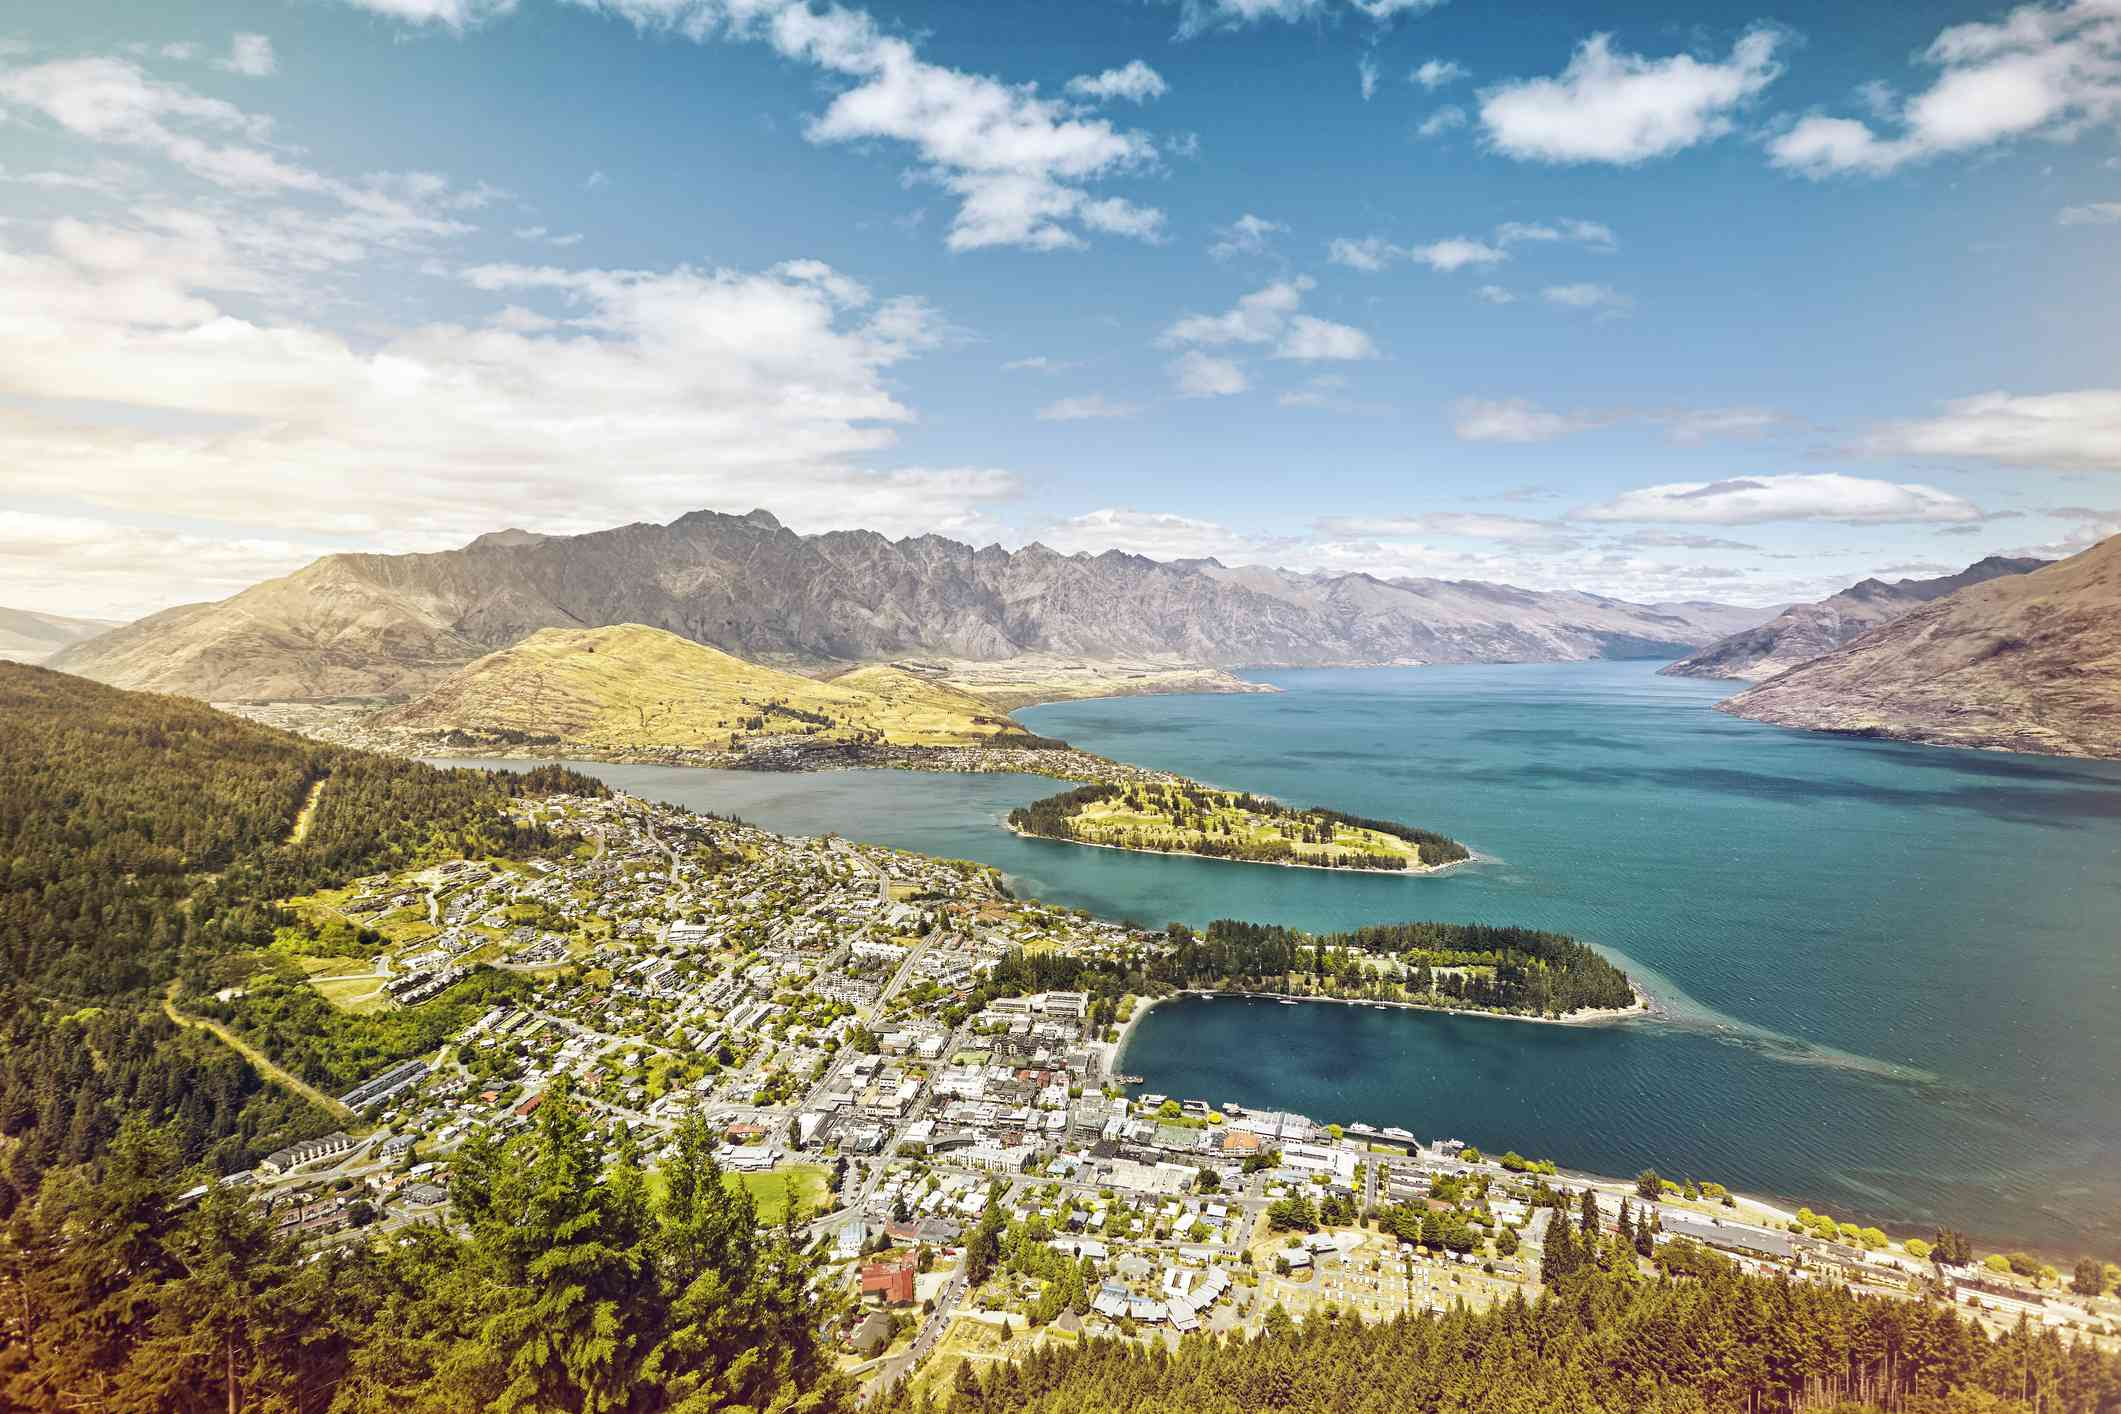 aerial view of Queenstown on the shores of blue Lake Wakatipu with mountains in background